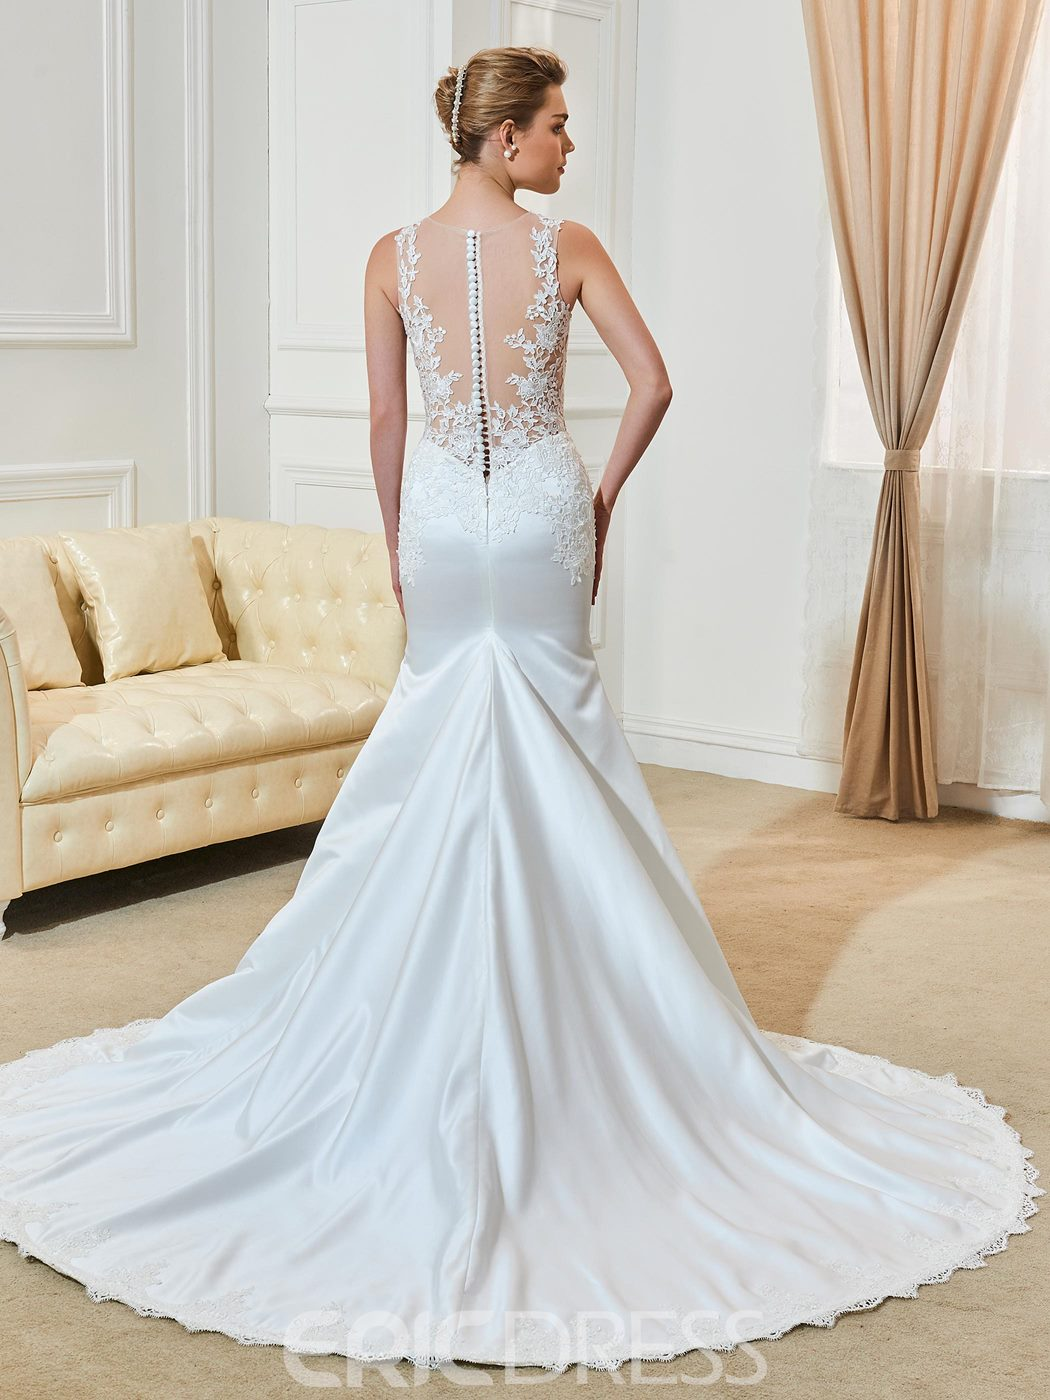 Ericdress Beautiful Scoop Appliques Illusion Back Mermaid Wedding Dress